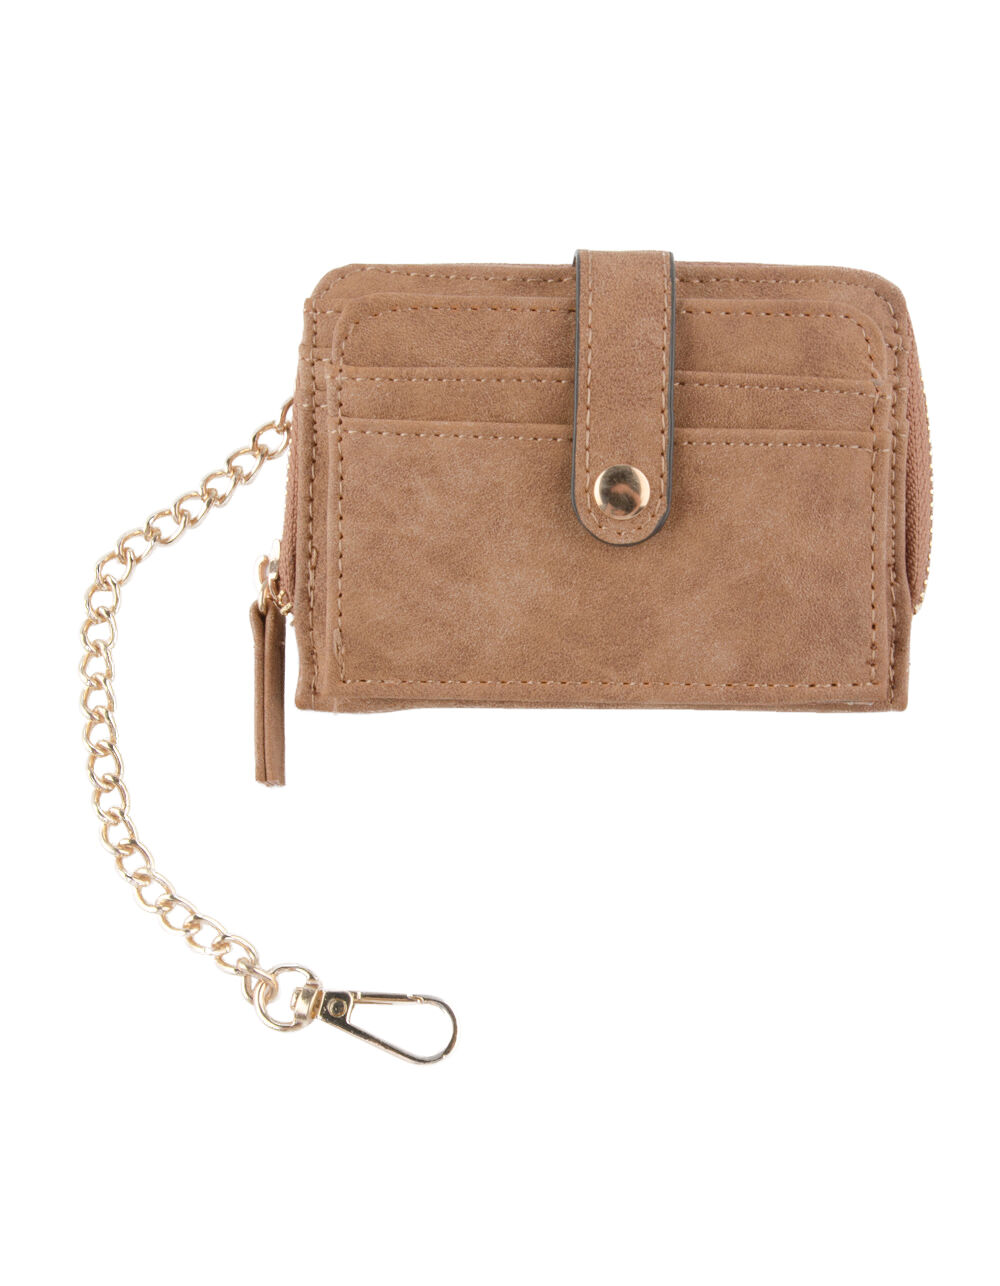 VIOLET RAY ZIP AROUND COGNAC WALLET